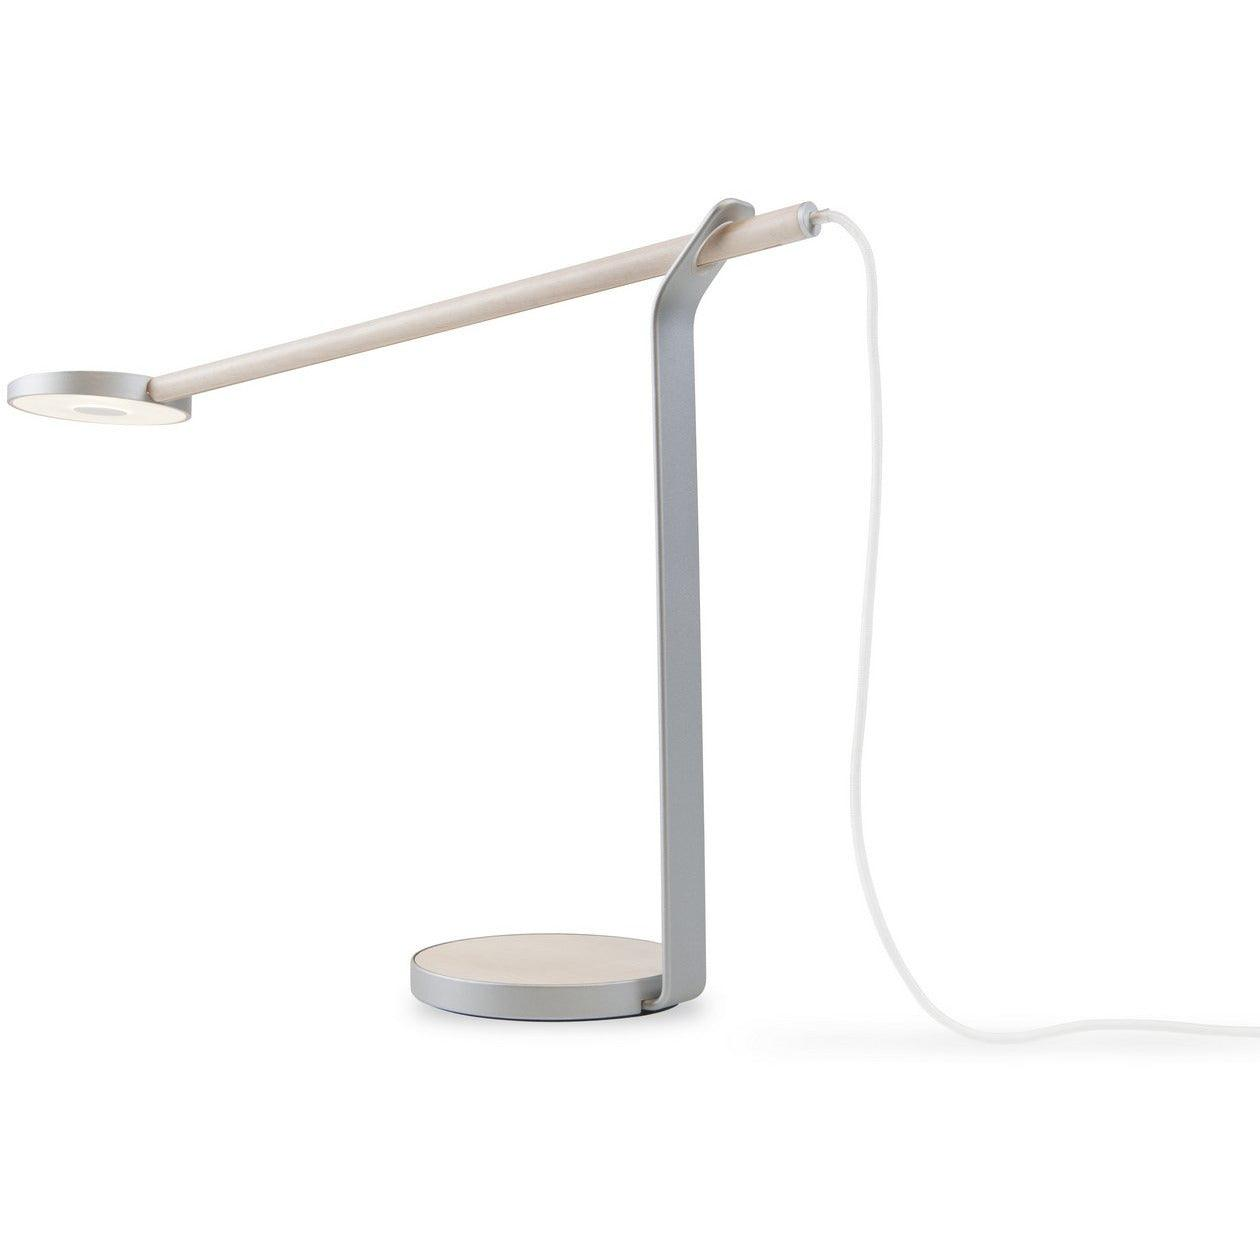 Koncept - GR1-W-MPW-SIL-DSK - LED Desk Lamp - Gravy - Maple/Silver